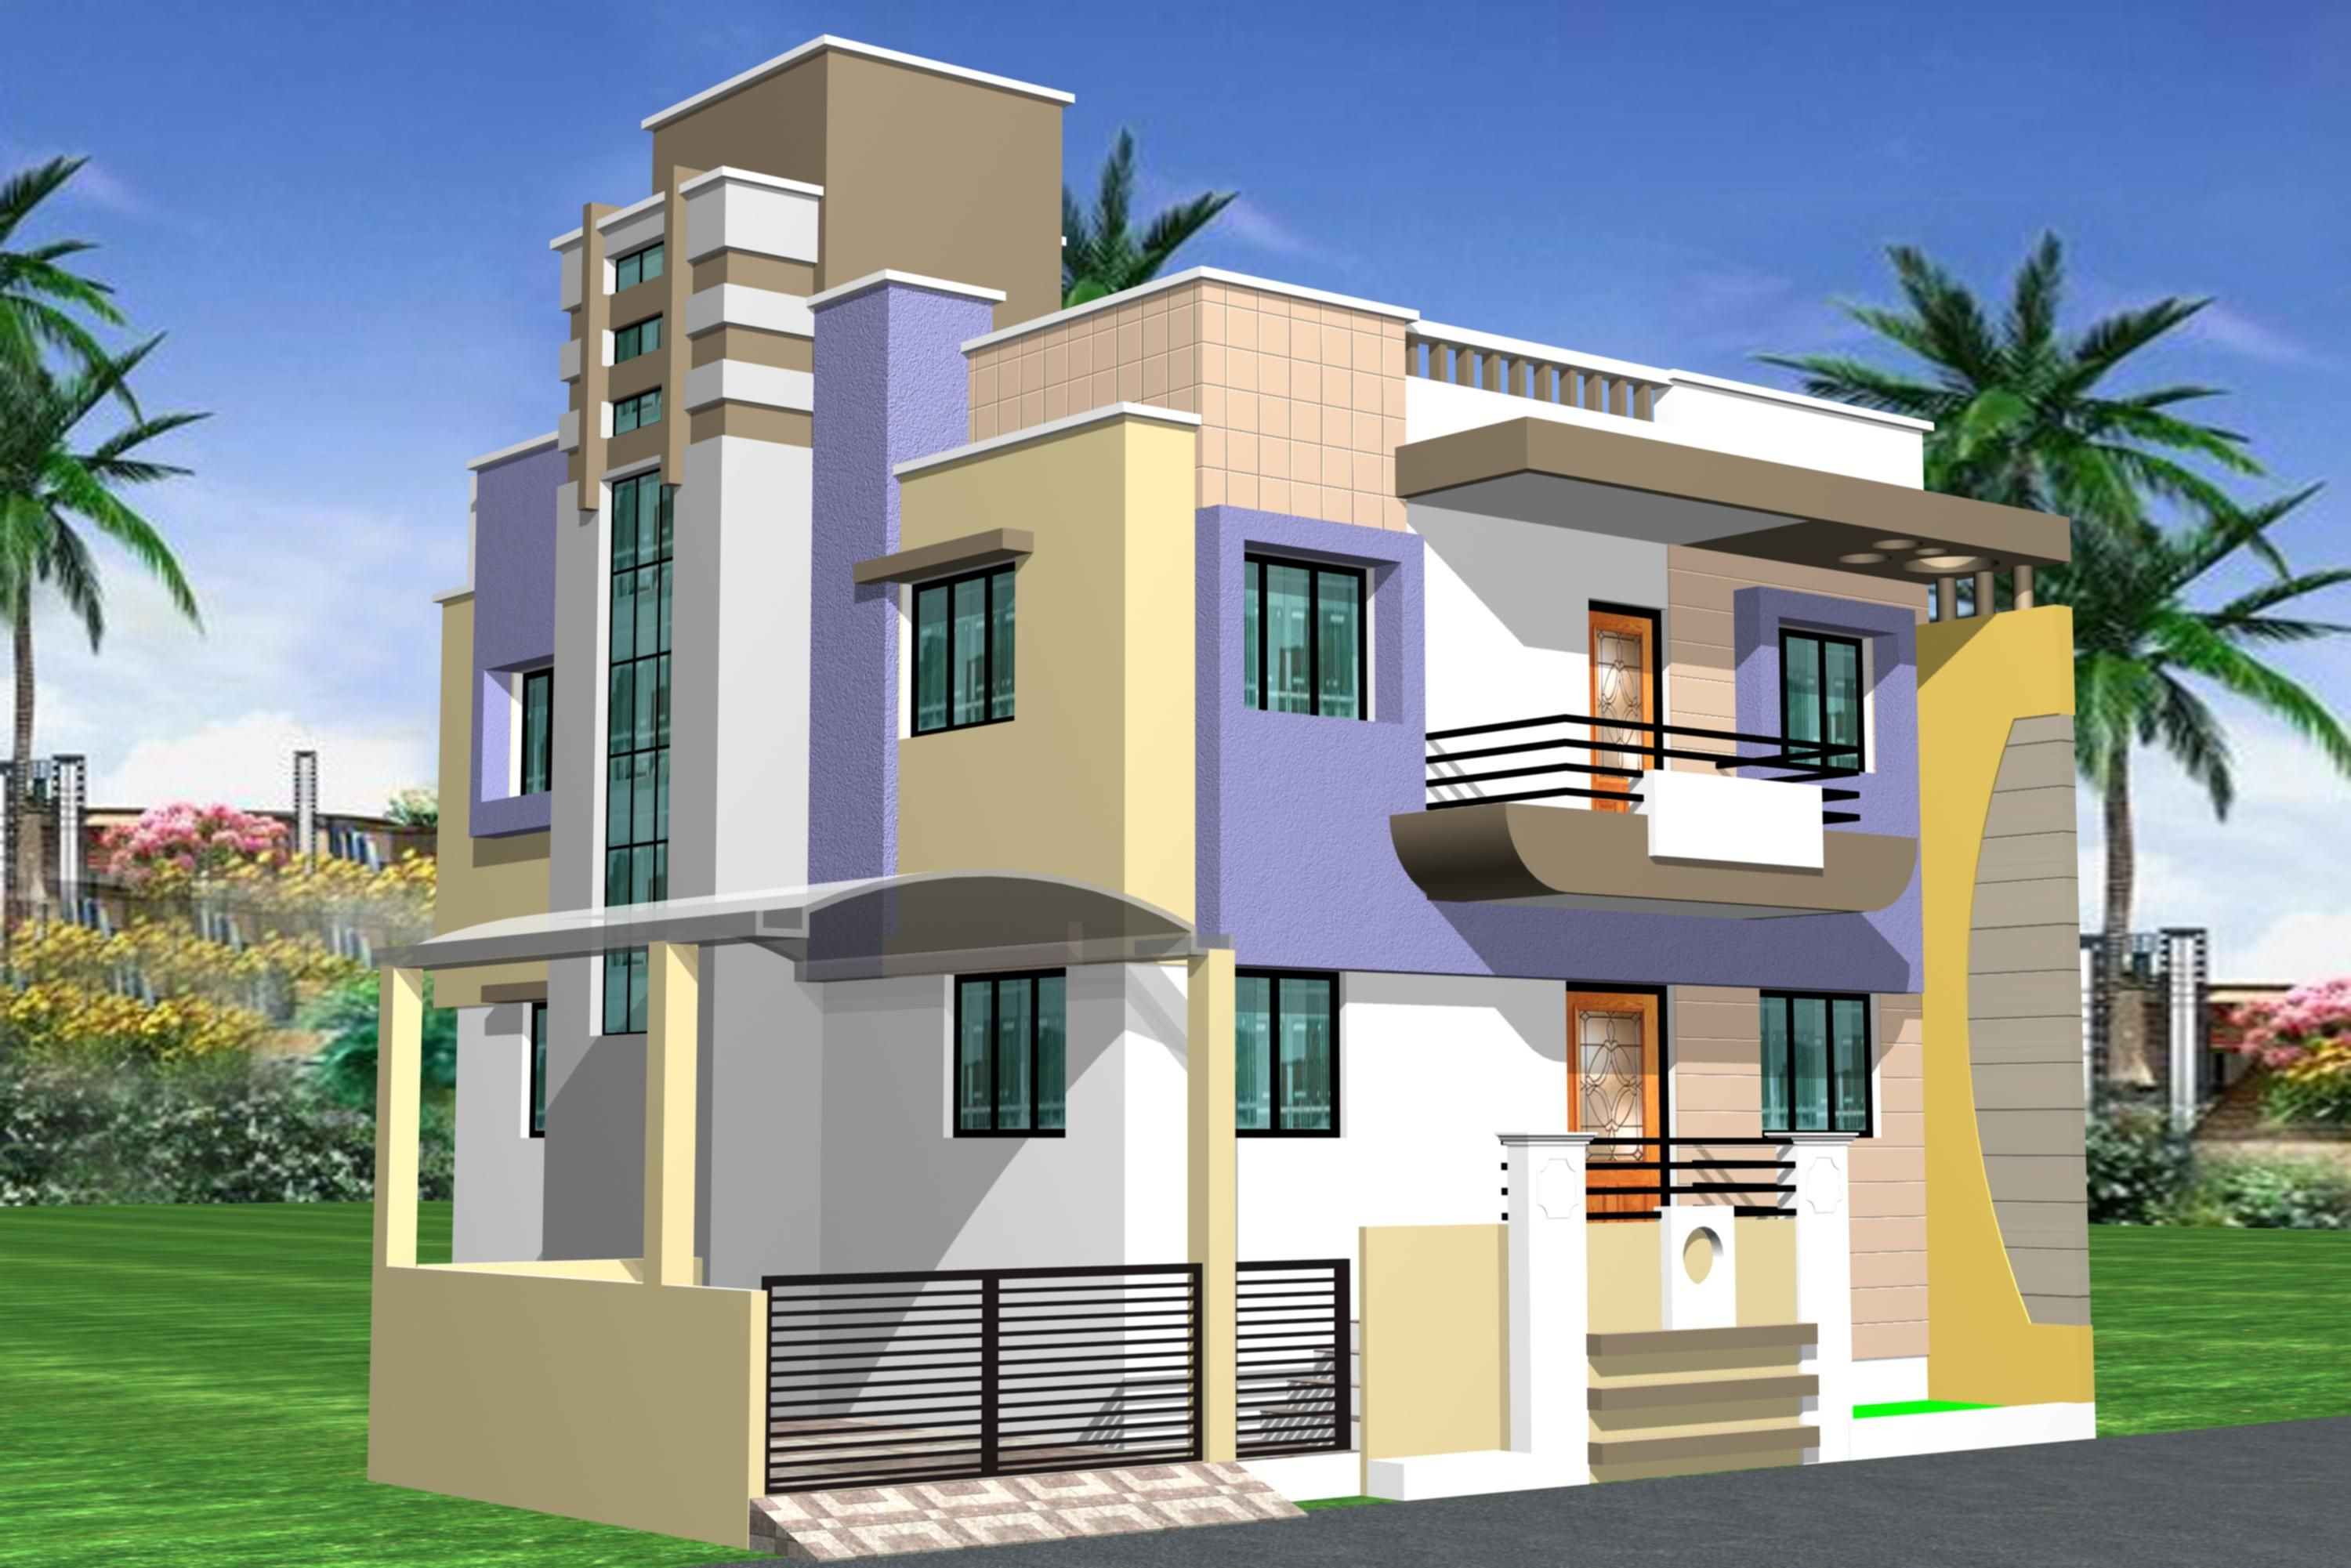 Duplex Apartment Design Exterior modern house exterior elevation designs - pueblosinfronteras